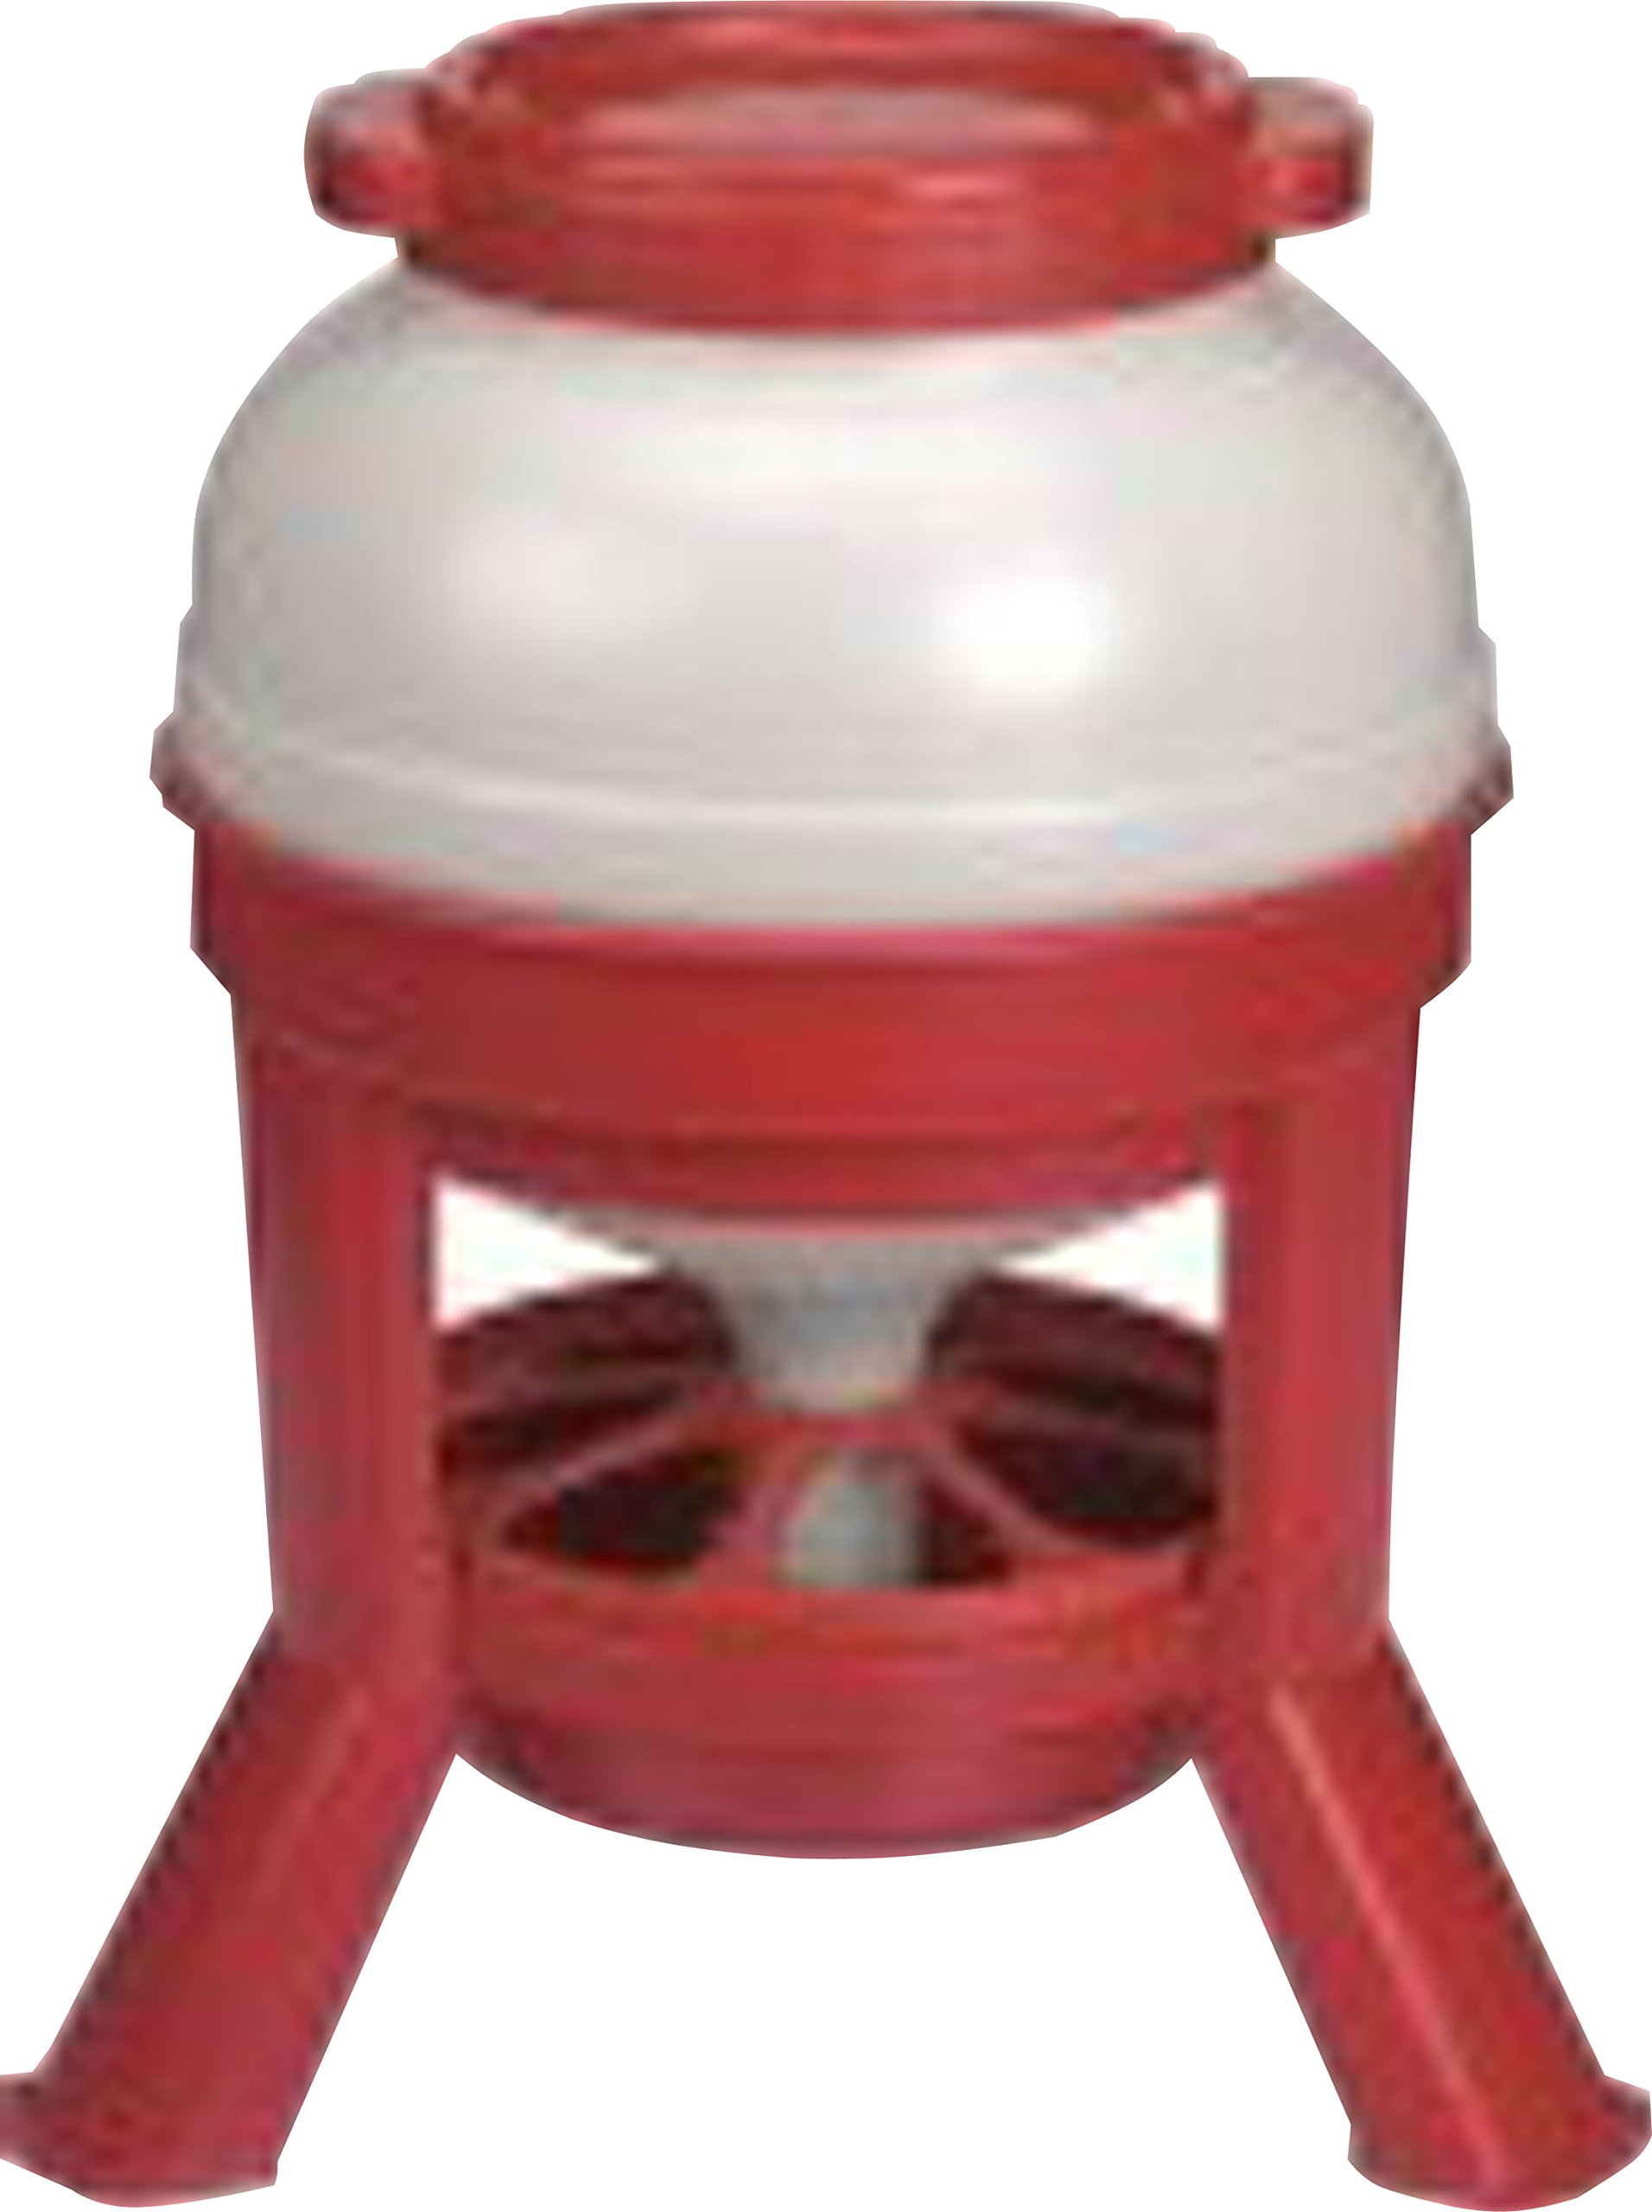 LITTLE GIANT DOMEFDR35 Plastic 35 lb. Dome Feeder by LITTLE GIANT